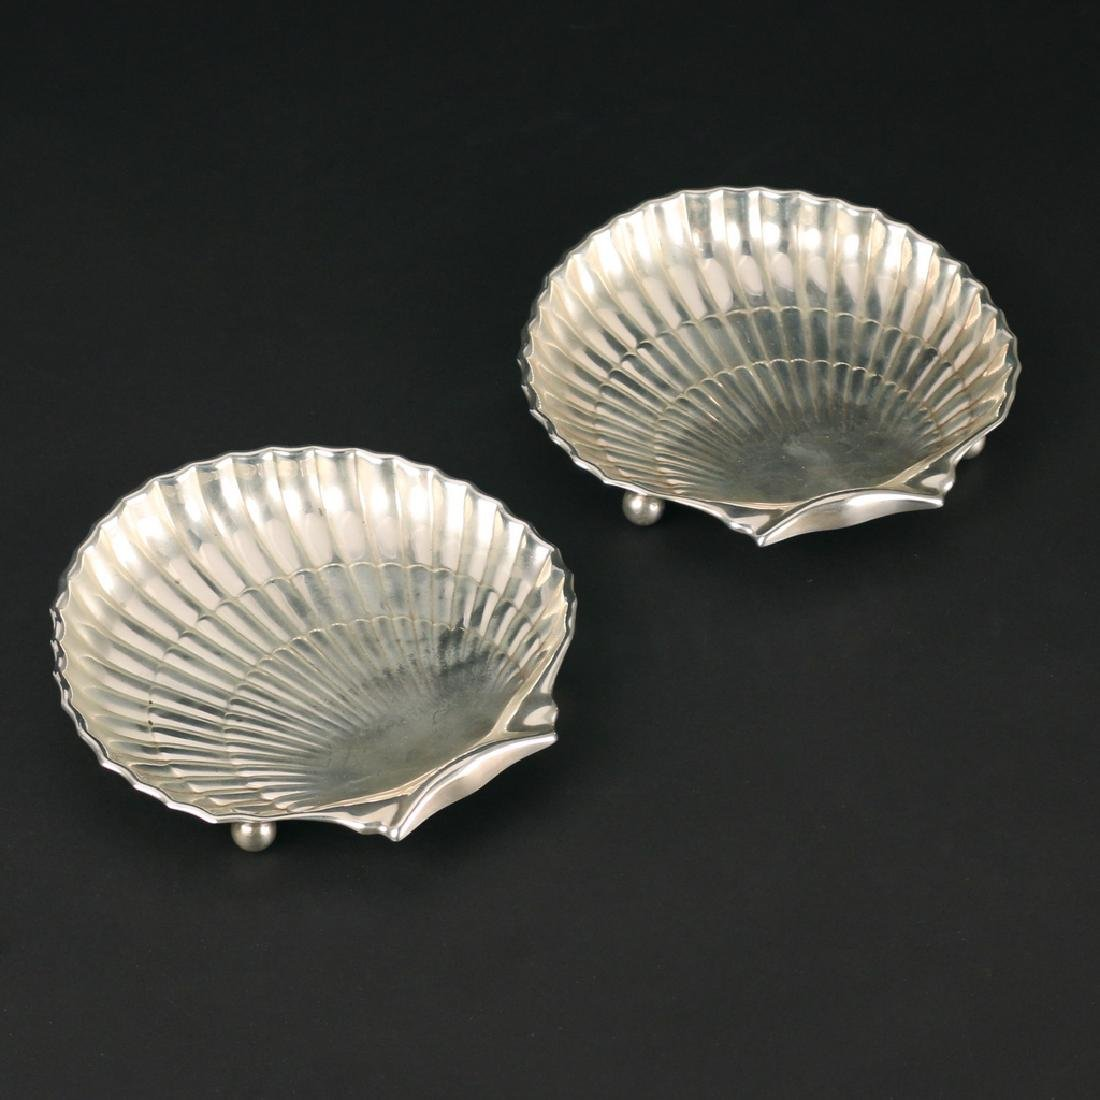 (2pc) GORHAM STERLING SILVER SHELL DISHES